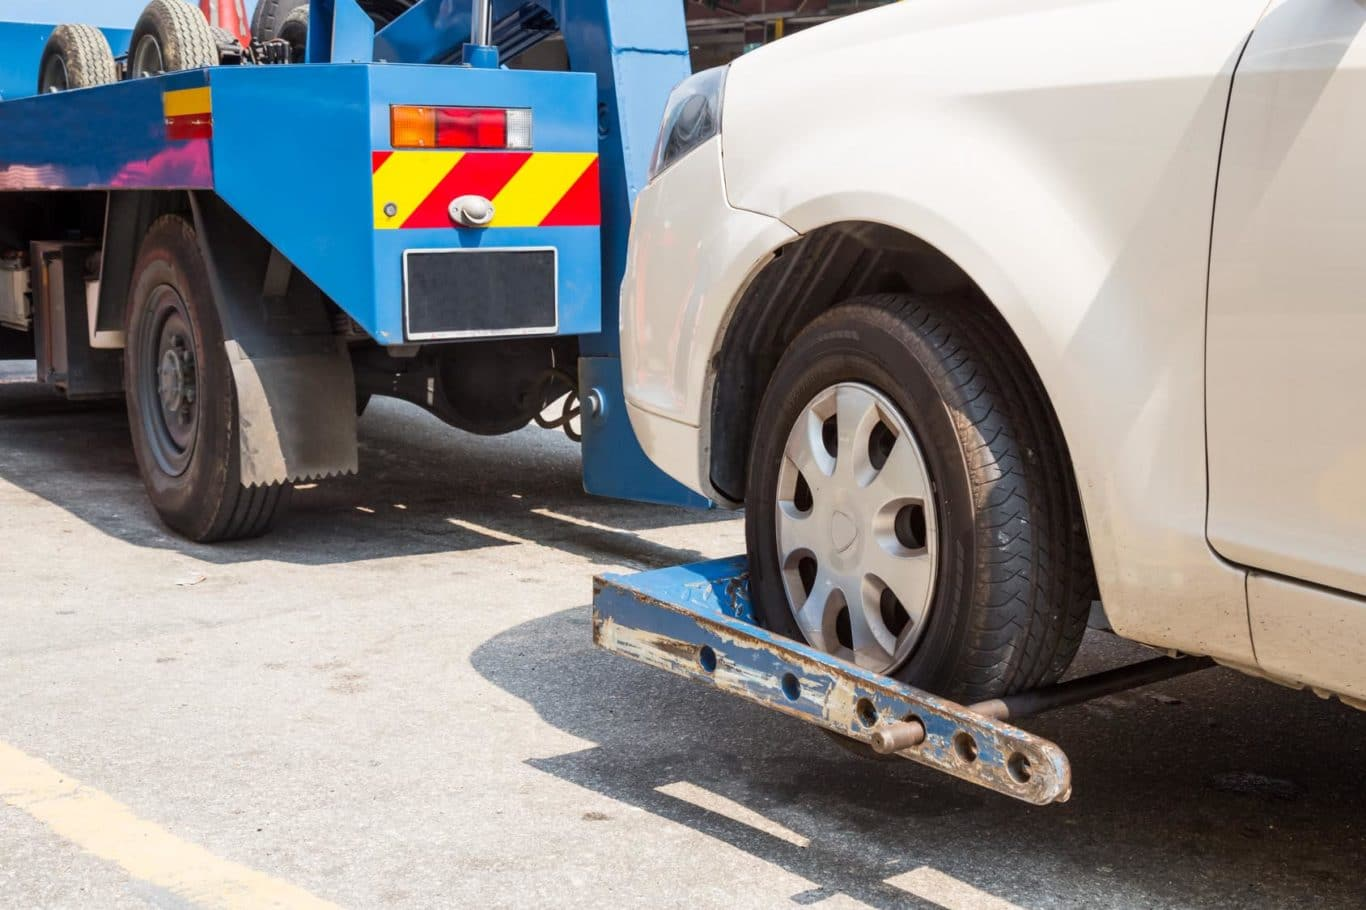 Killester expert Roadside Assistance services